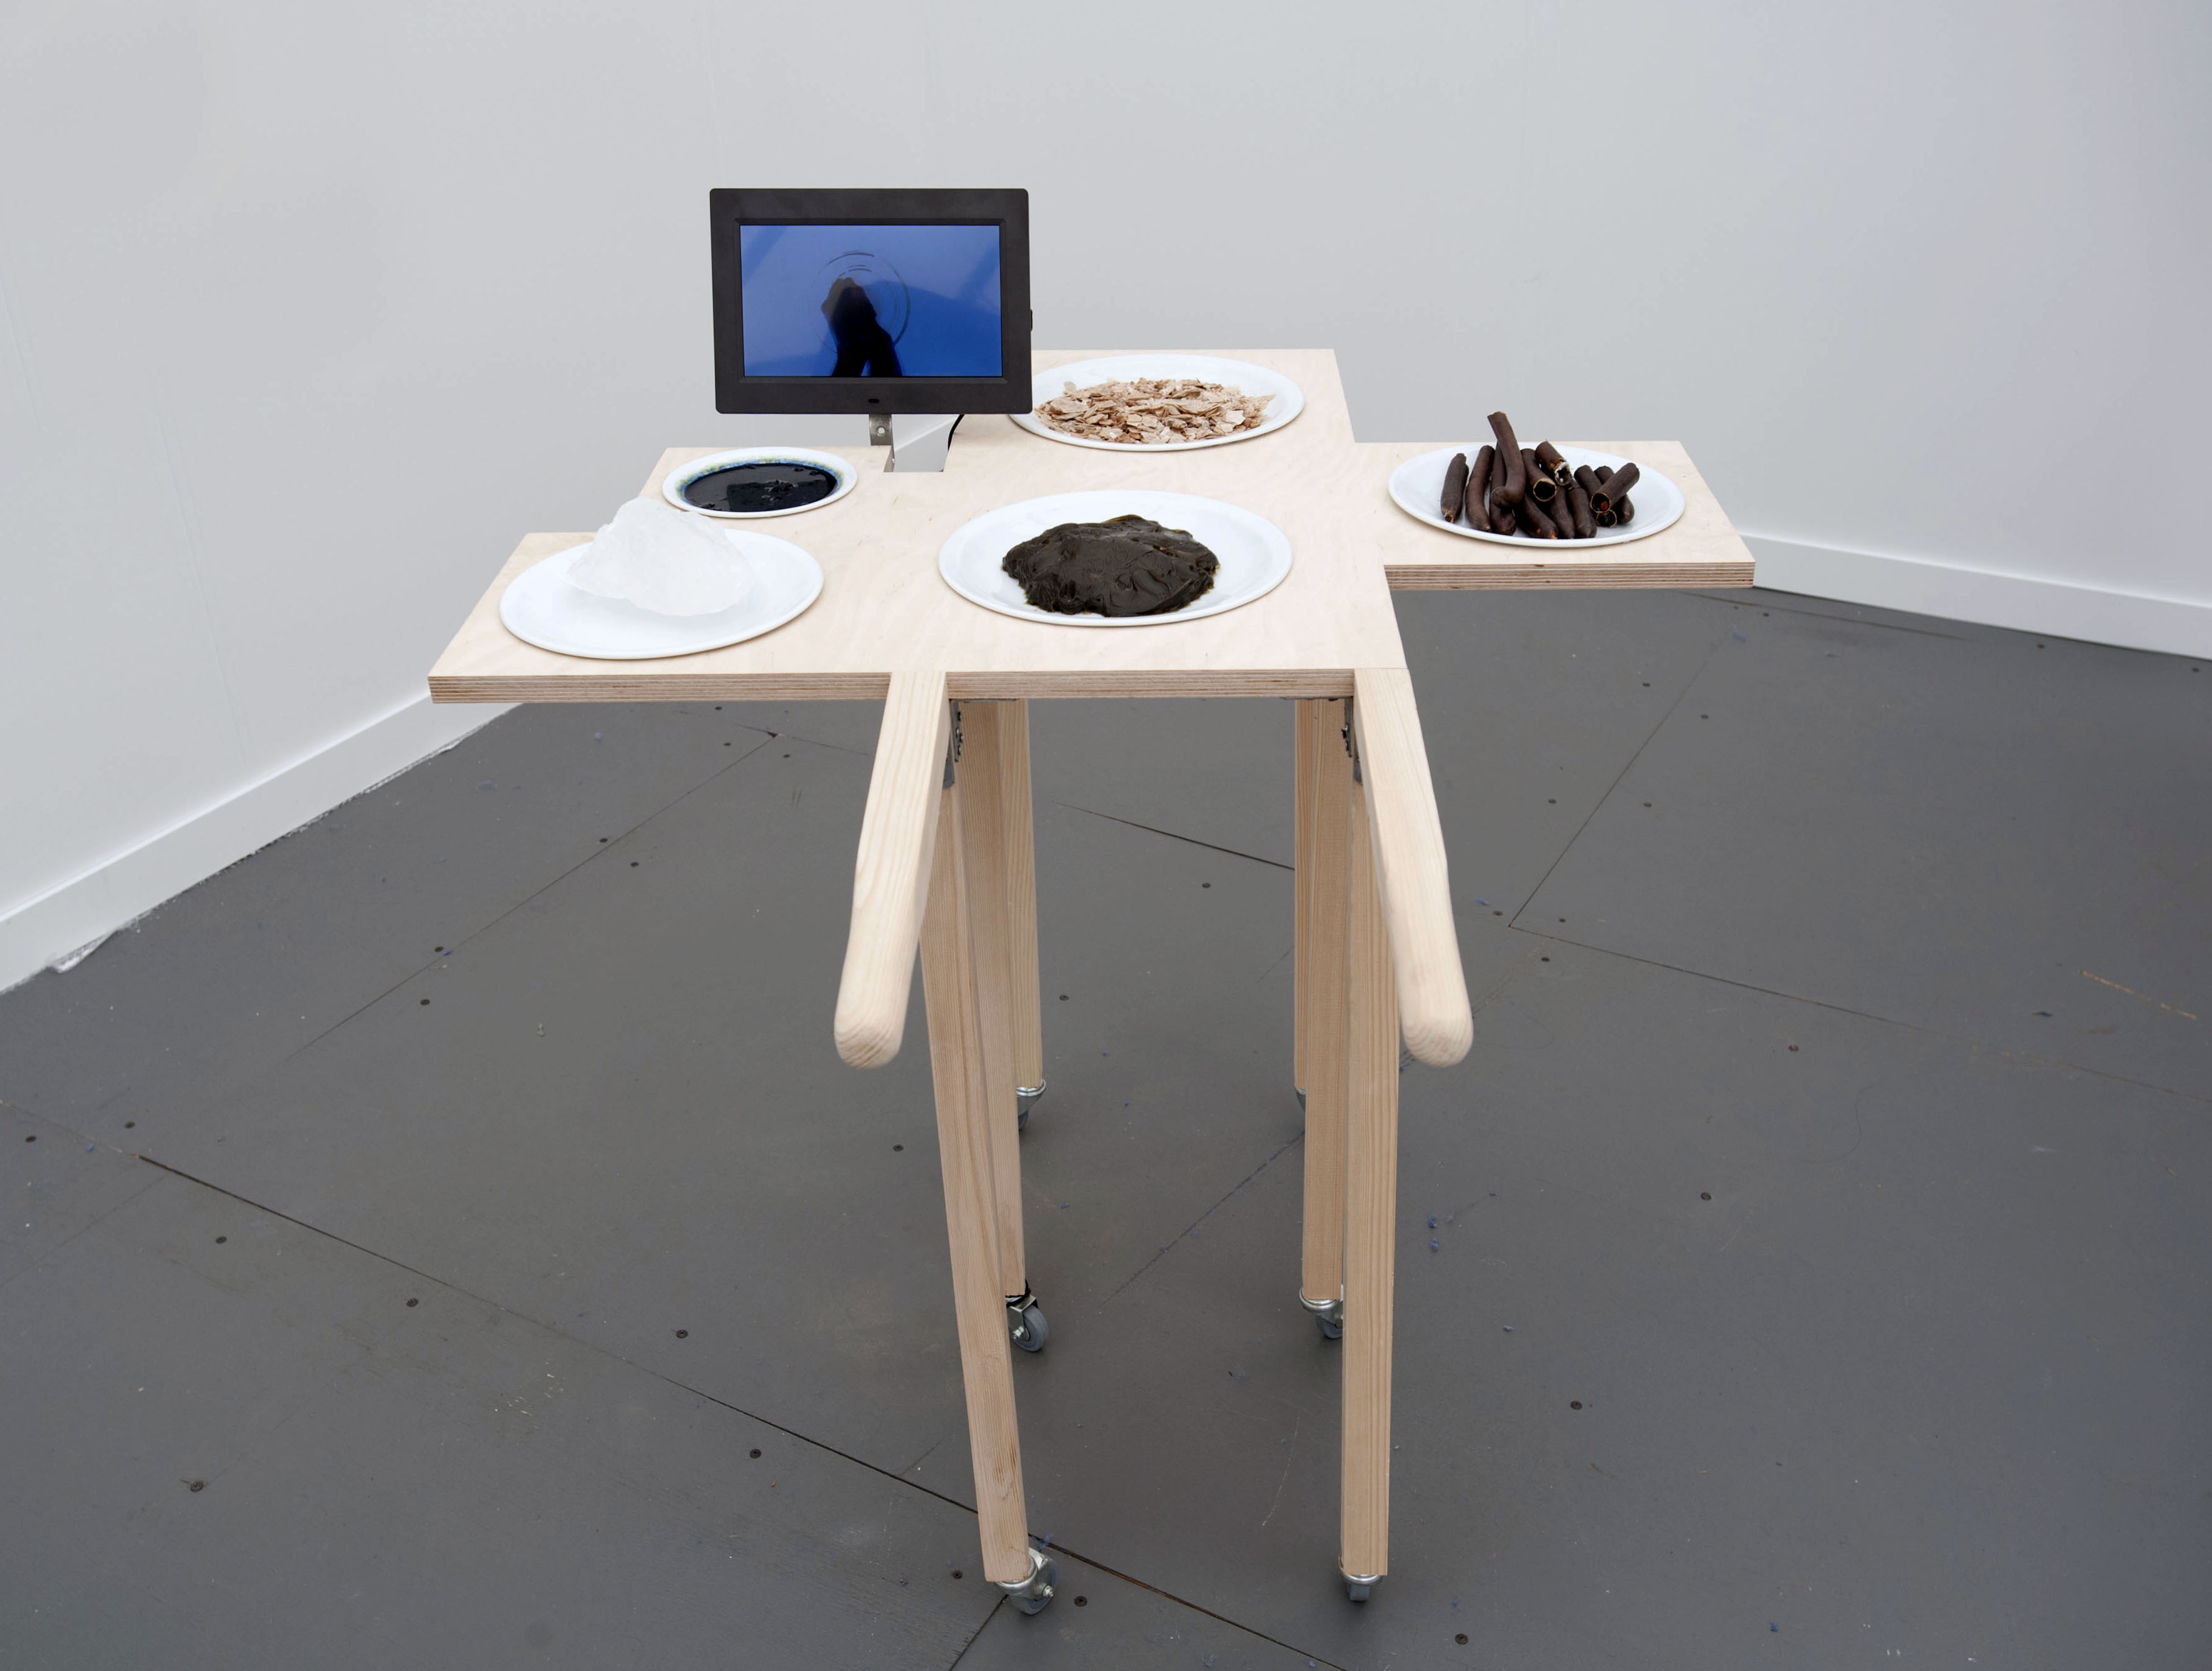 Otobong Nkanga - Contained Measures of Tangible Memories, 2009-2011